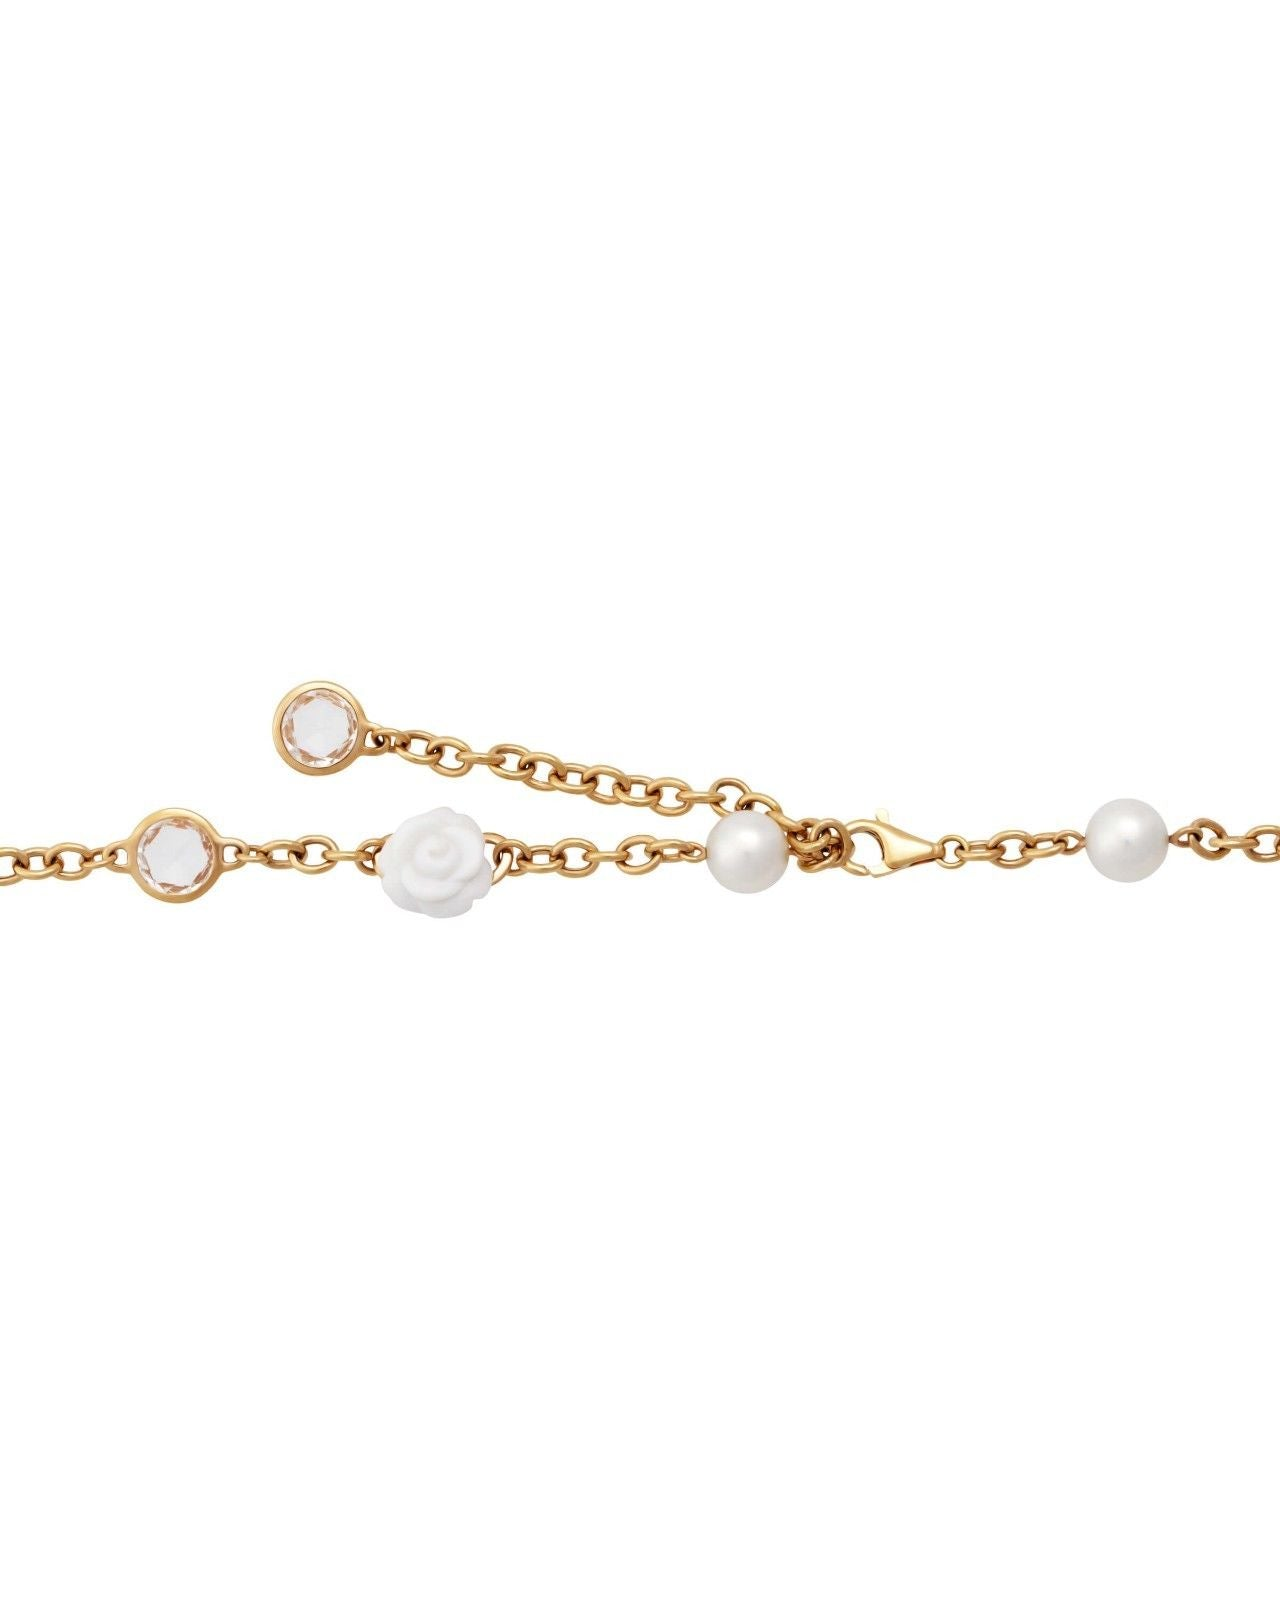 Mimi Milano Necklace In Rose 18K Gold Agate, Rock Crystal Pearls C191R1A1J